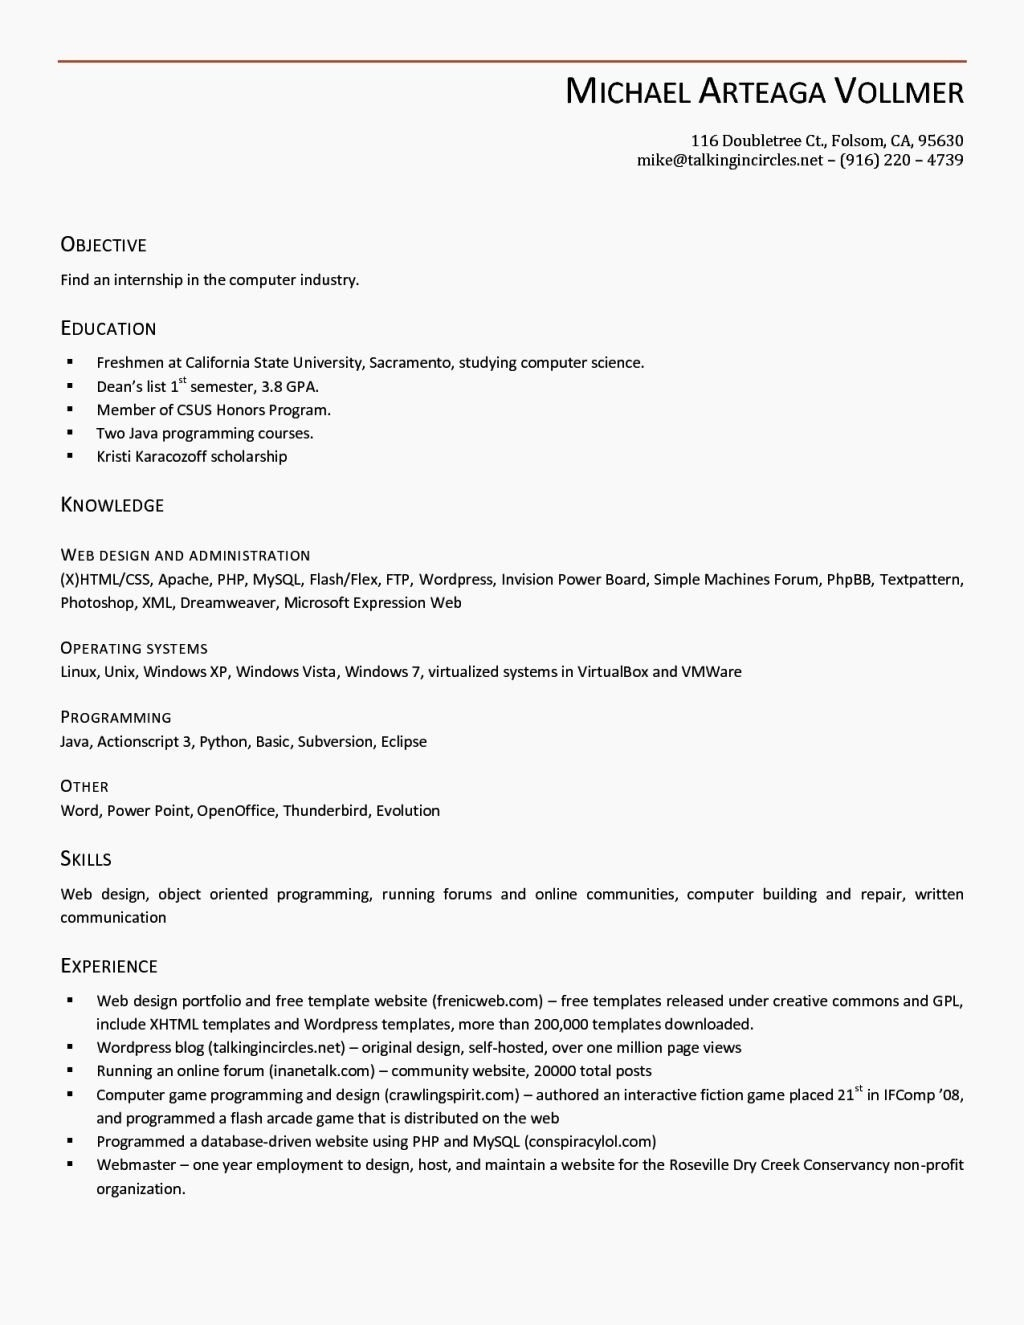 Where to Find Resume Templates Beautiful Open Fice Resume Template Beepmunk